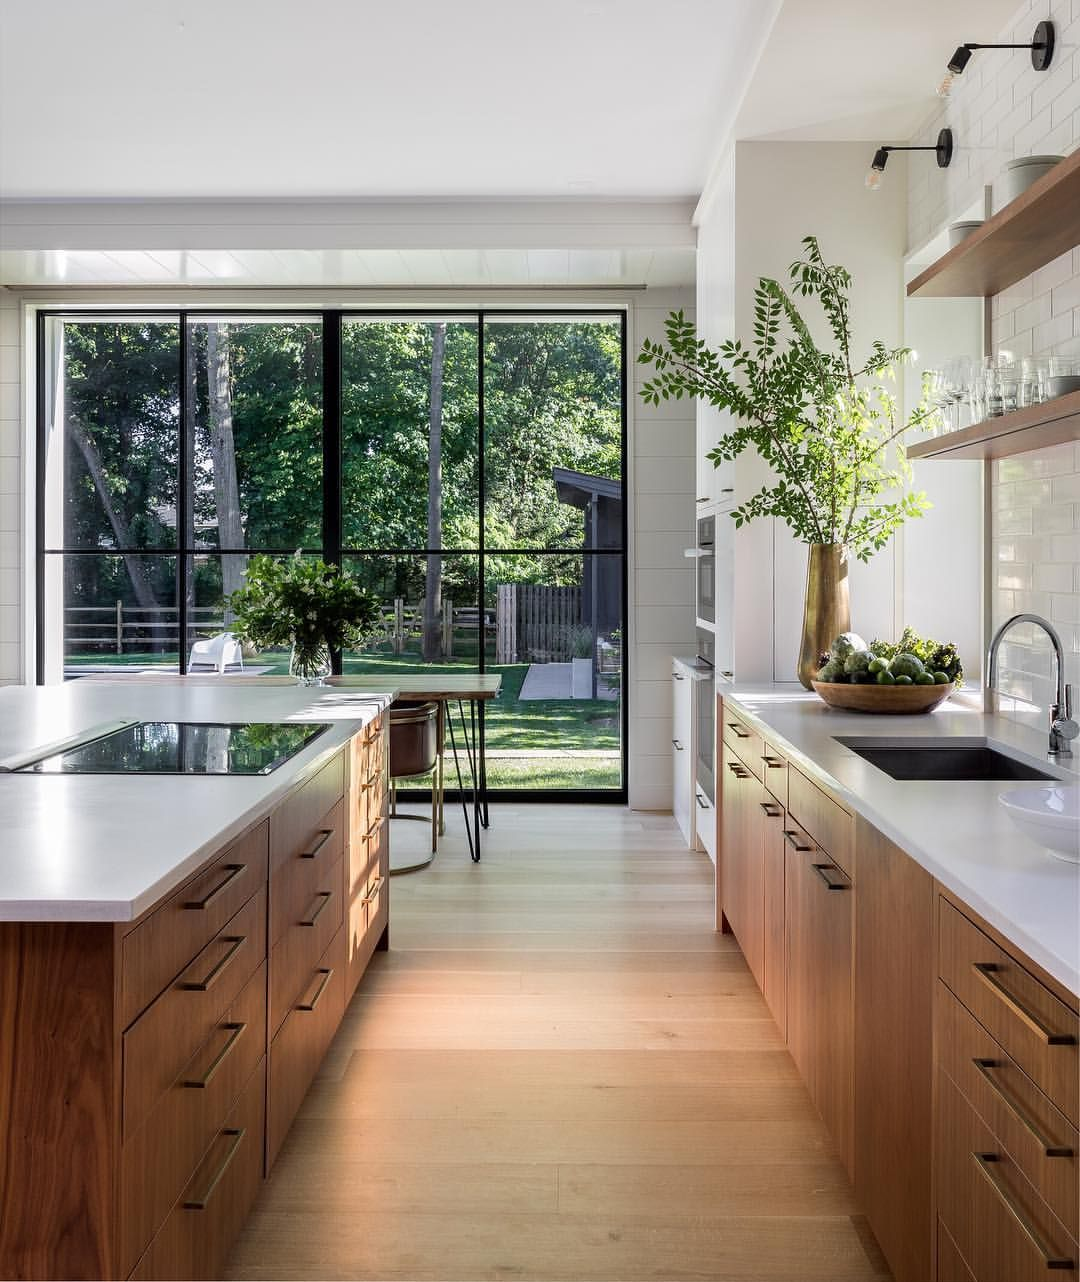 Mowery marsh architects on instagram  cit   finally out there we ve been in with this house since it was completed the spring of and have also unusual article uncovers deceptive practices waterfall rh pinterest